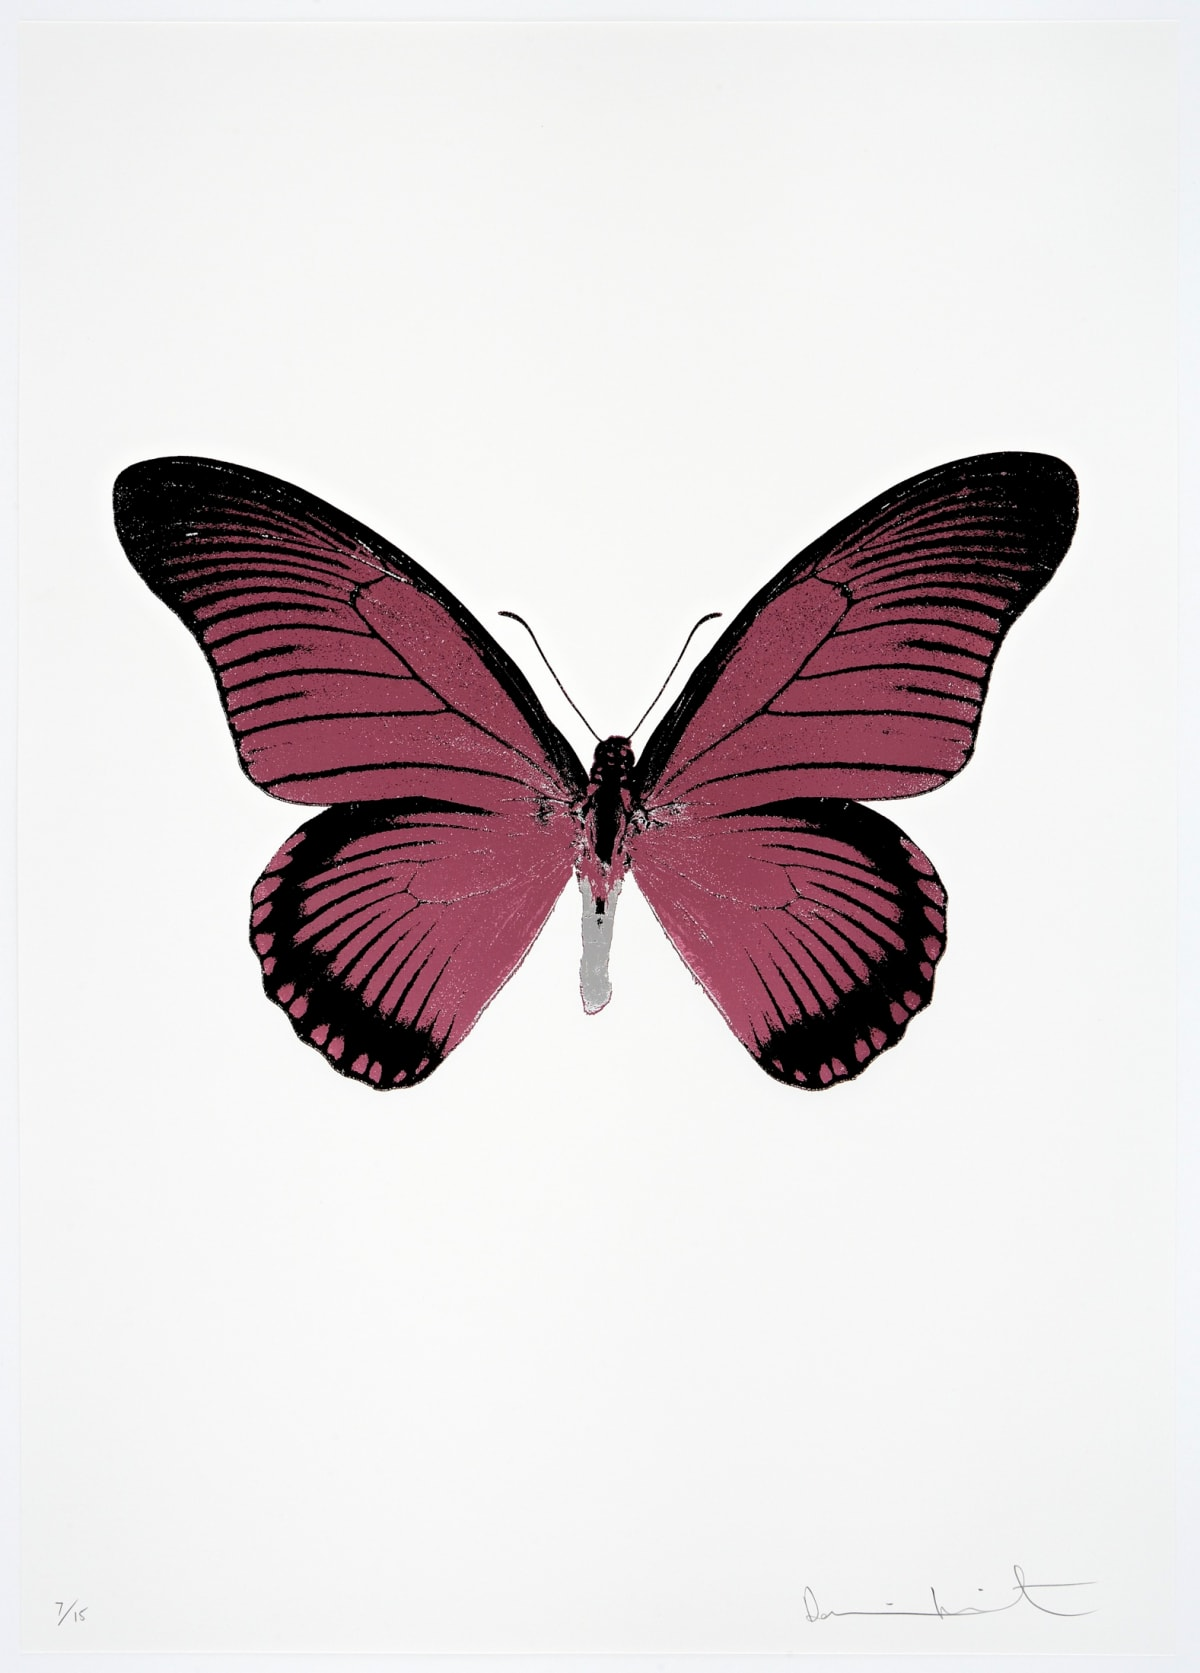 Damien Hirst The Souls IV - Loganberry Pink/Raven Black/Silver Gloss Damien Hirst butterfly foil print for sale Damien Hirst print for sale , 2010 3 colour foil block on 300gsm Arches 88 archival paper. Signed and numbered. Published by Paul Stolper and Other Criteria 72 x 51cm OC8011 / 1418-34 Edition of 15